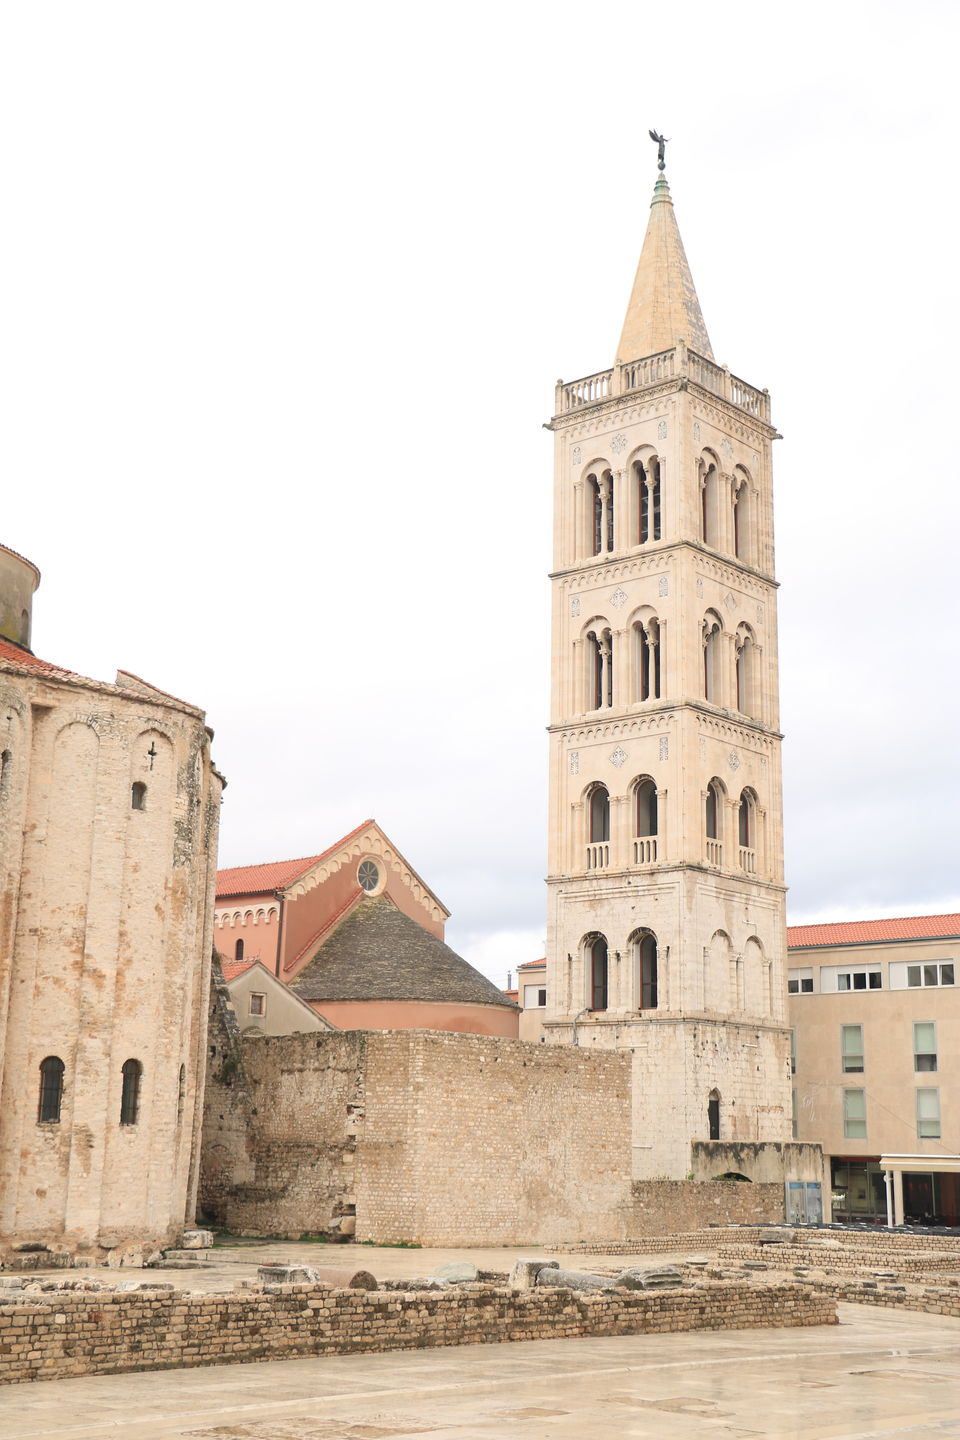 Photo of Saint Anastasia, Trg Svete Stošije, Zadar, Croatia by Sagarika Mohanty